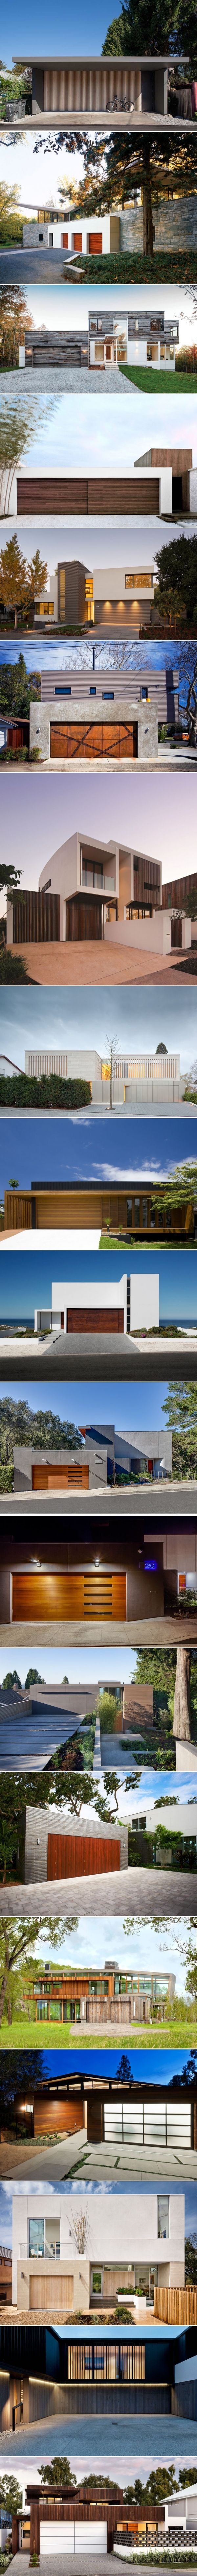 18 Inspirational Examples of Modern Garage Doors | CONTEMPORIST